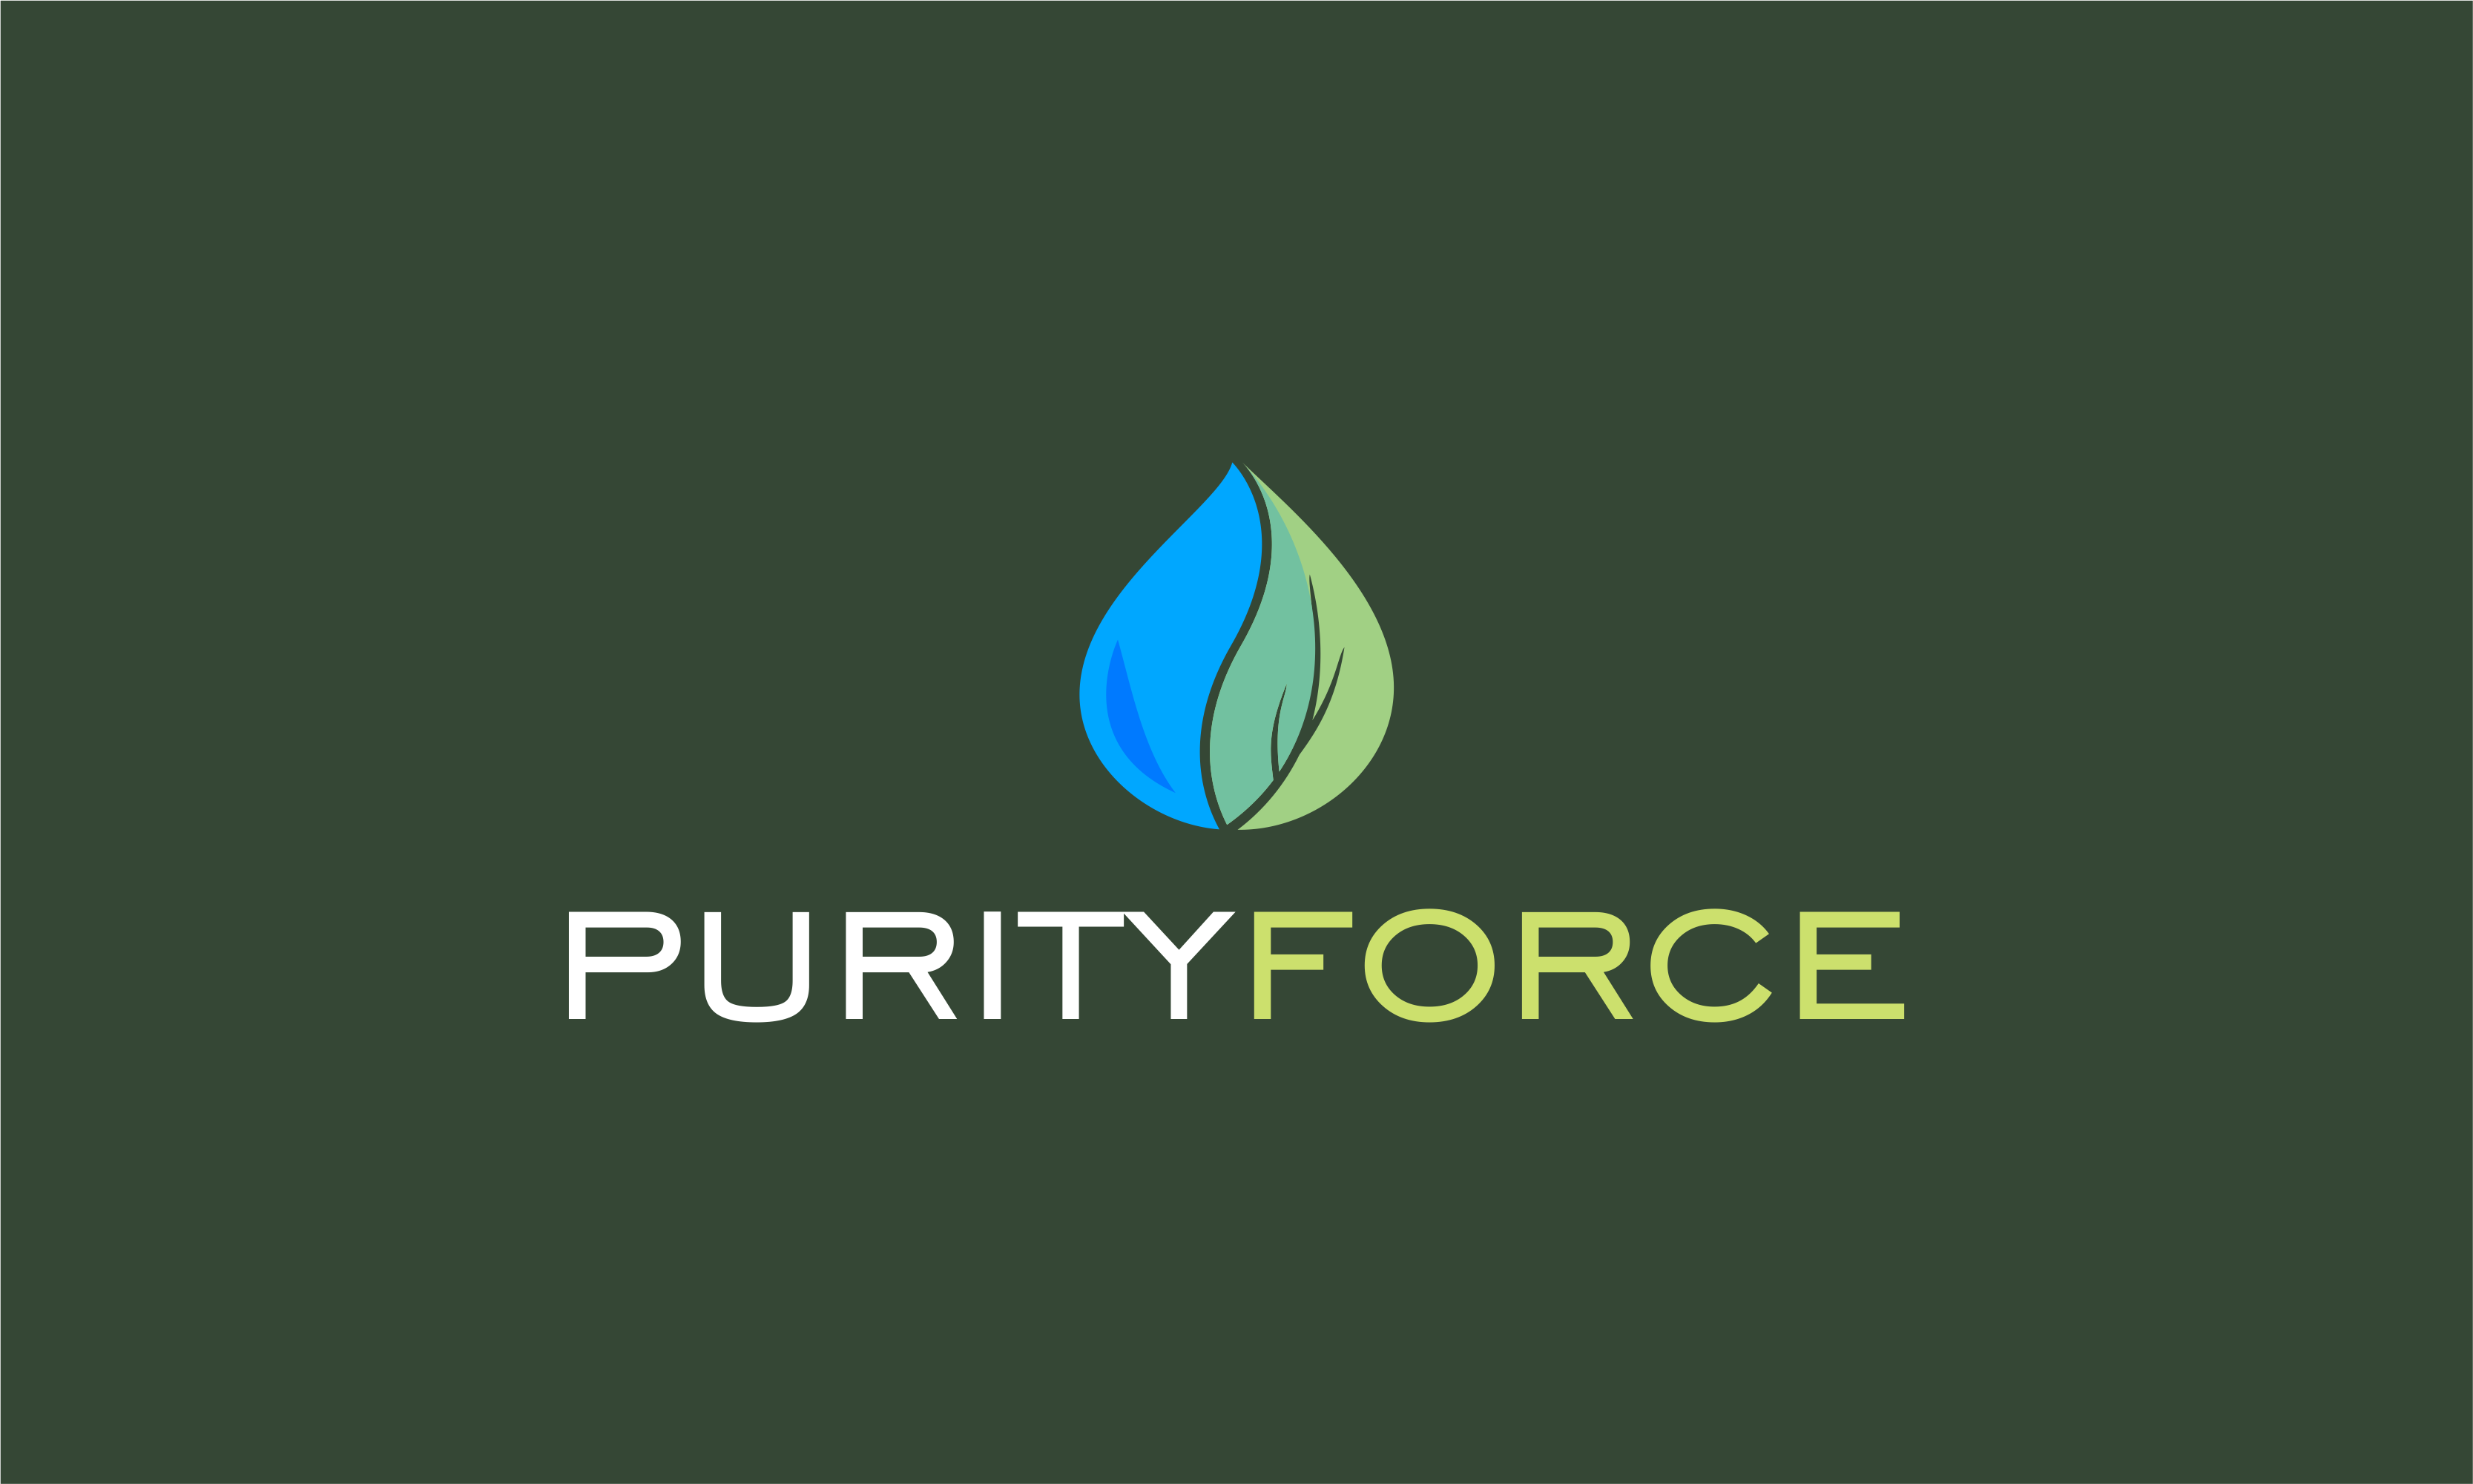 Purityforce